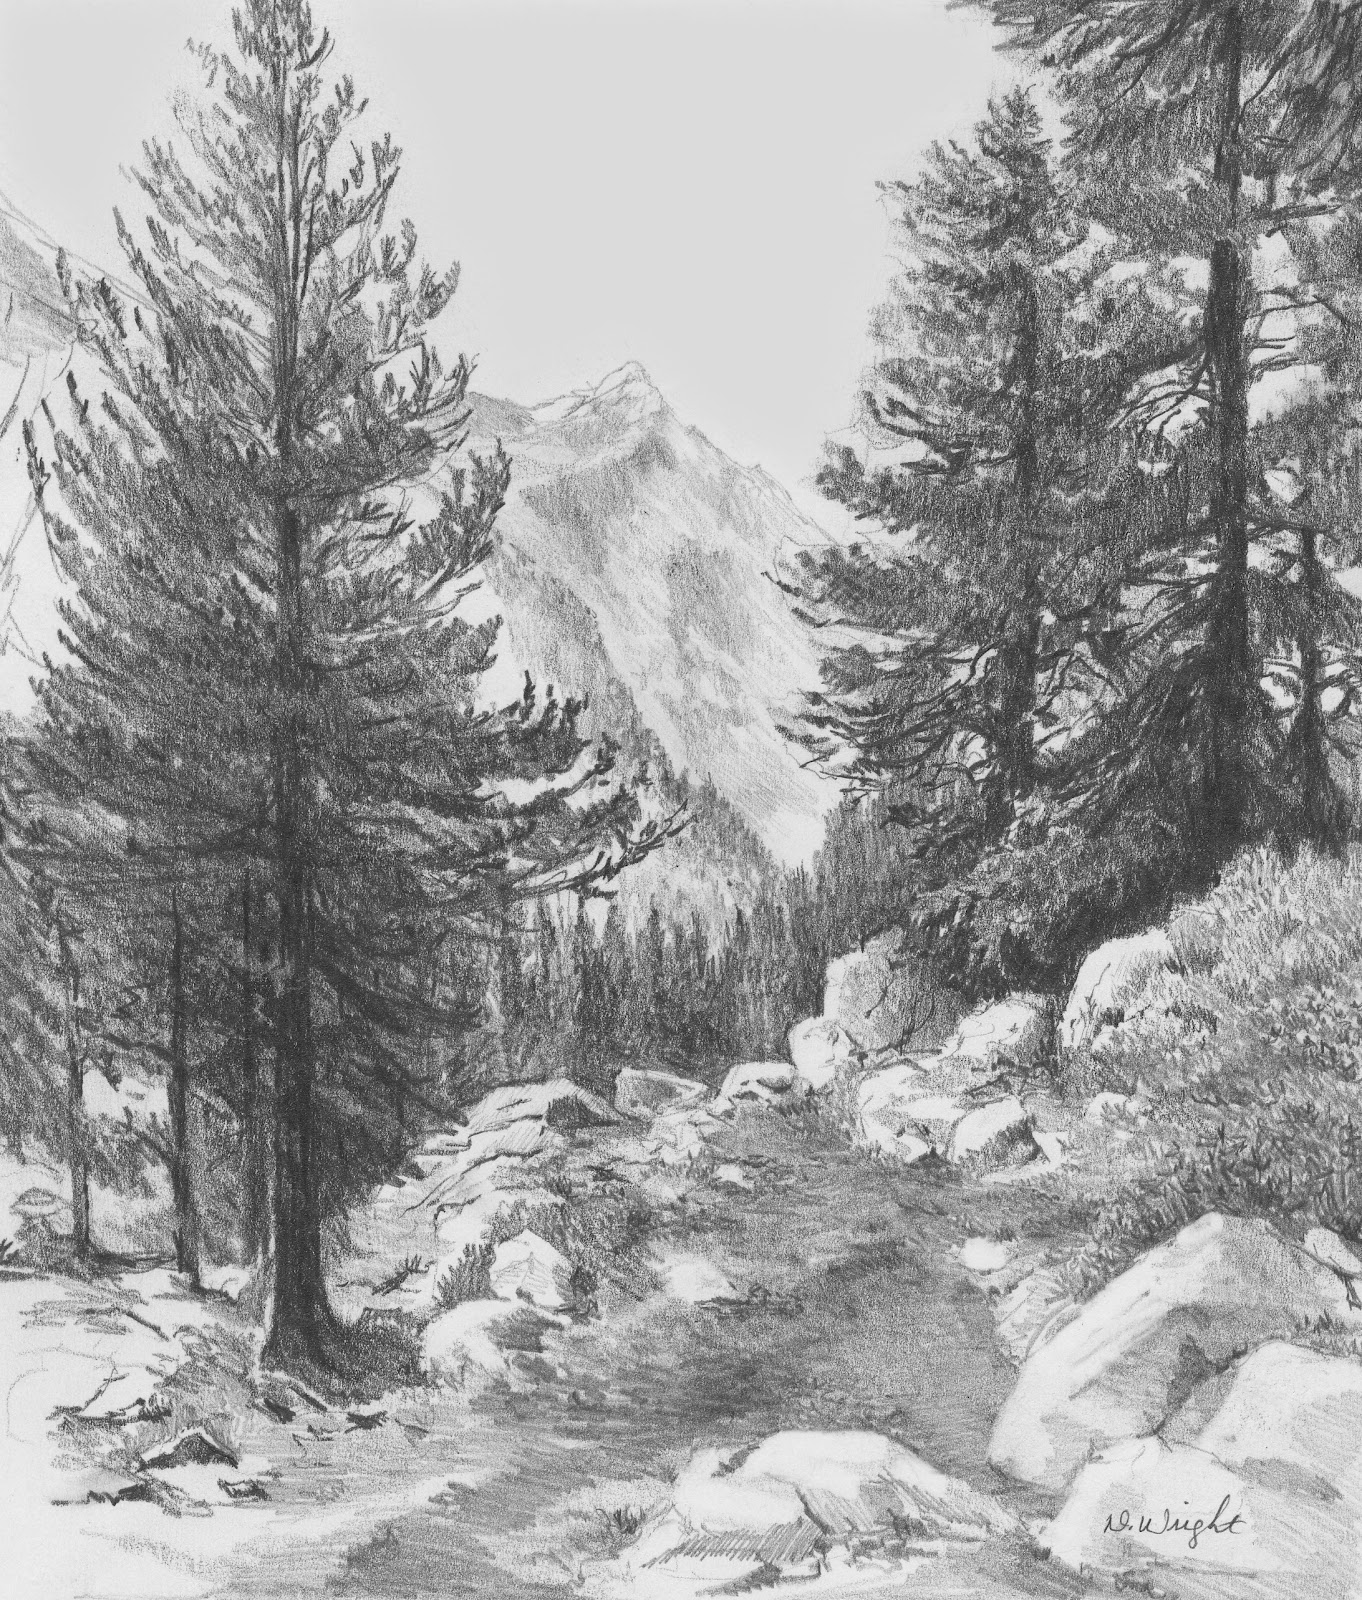 Drawn snowfall ice mountain Pencil Landscape Re)Introducing Diane Teaching